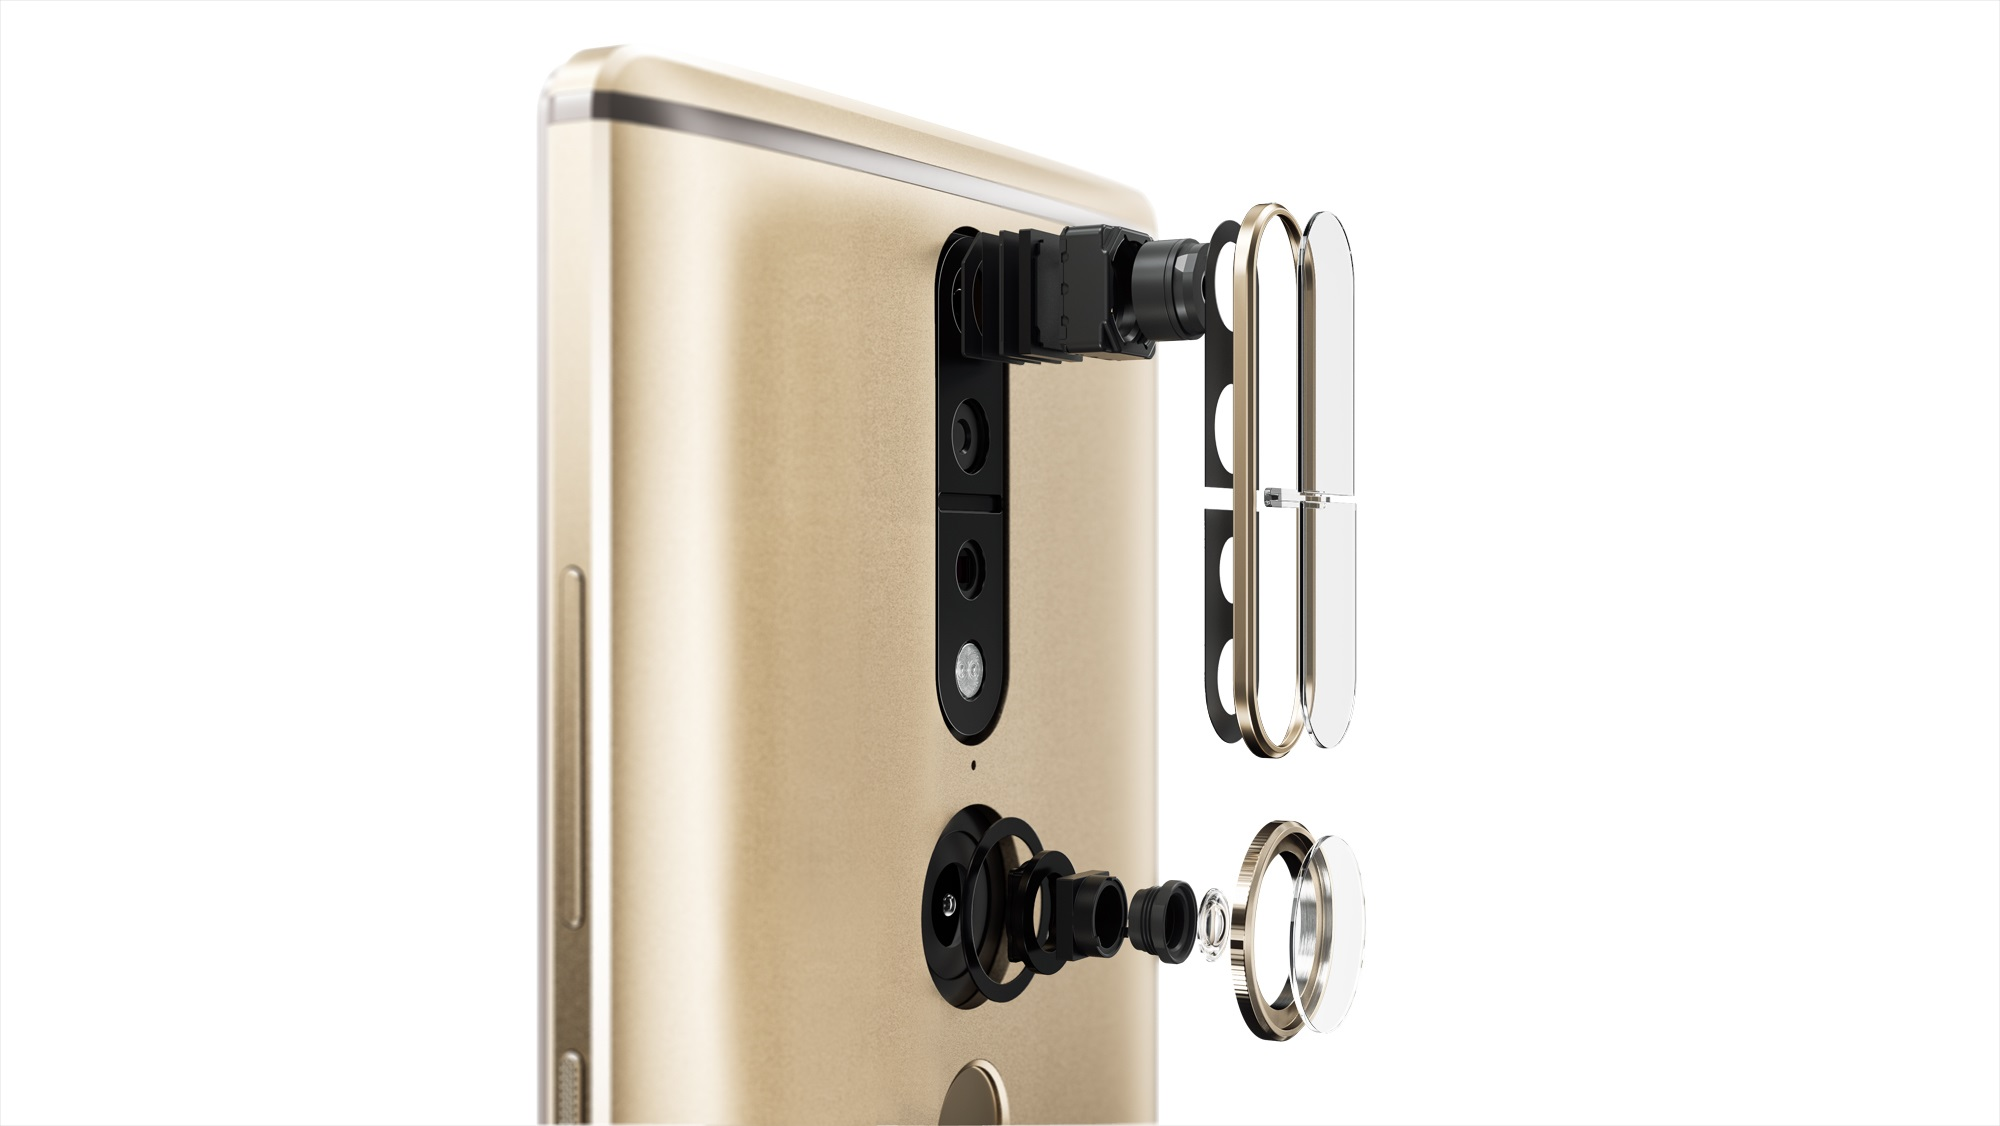 Schematic picture of Lenovo's new PHAB2 Pro smartphone